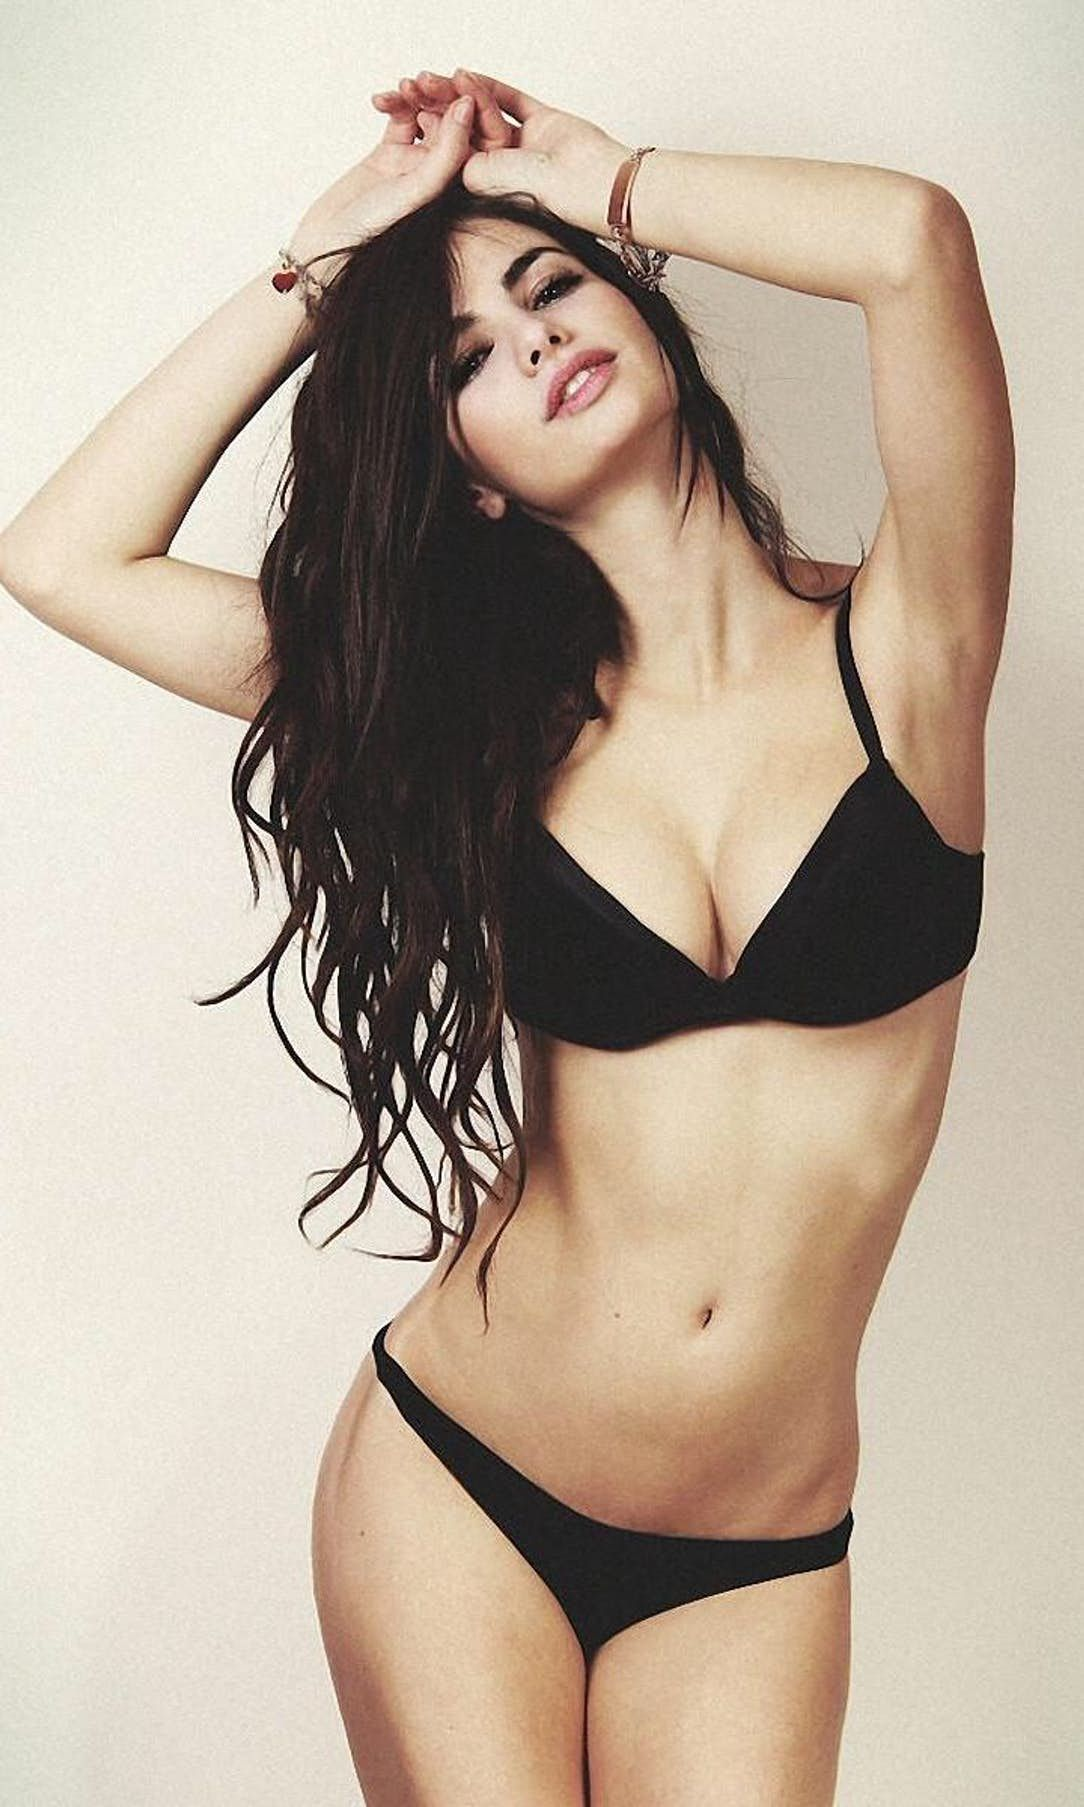 Low Rate Female Call Girl Services in Mumbai